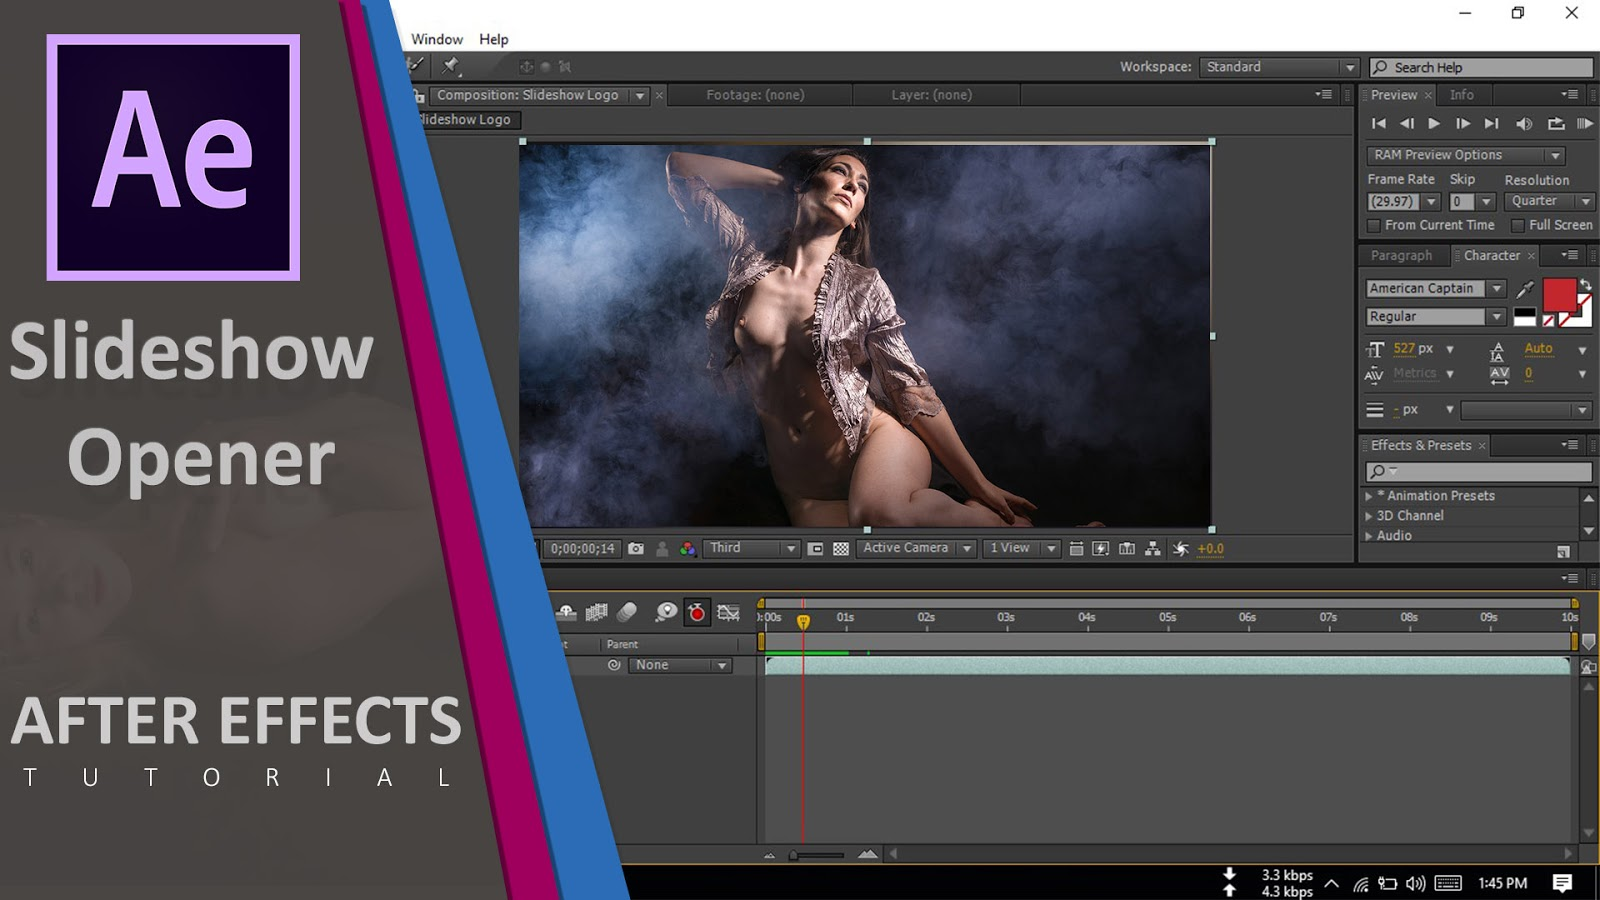 Create Slideshow Opener - After Effects Tutorial | No Third